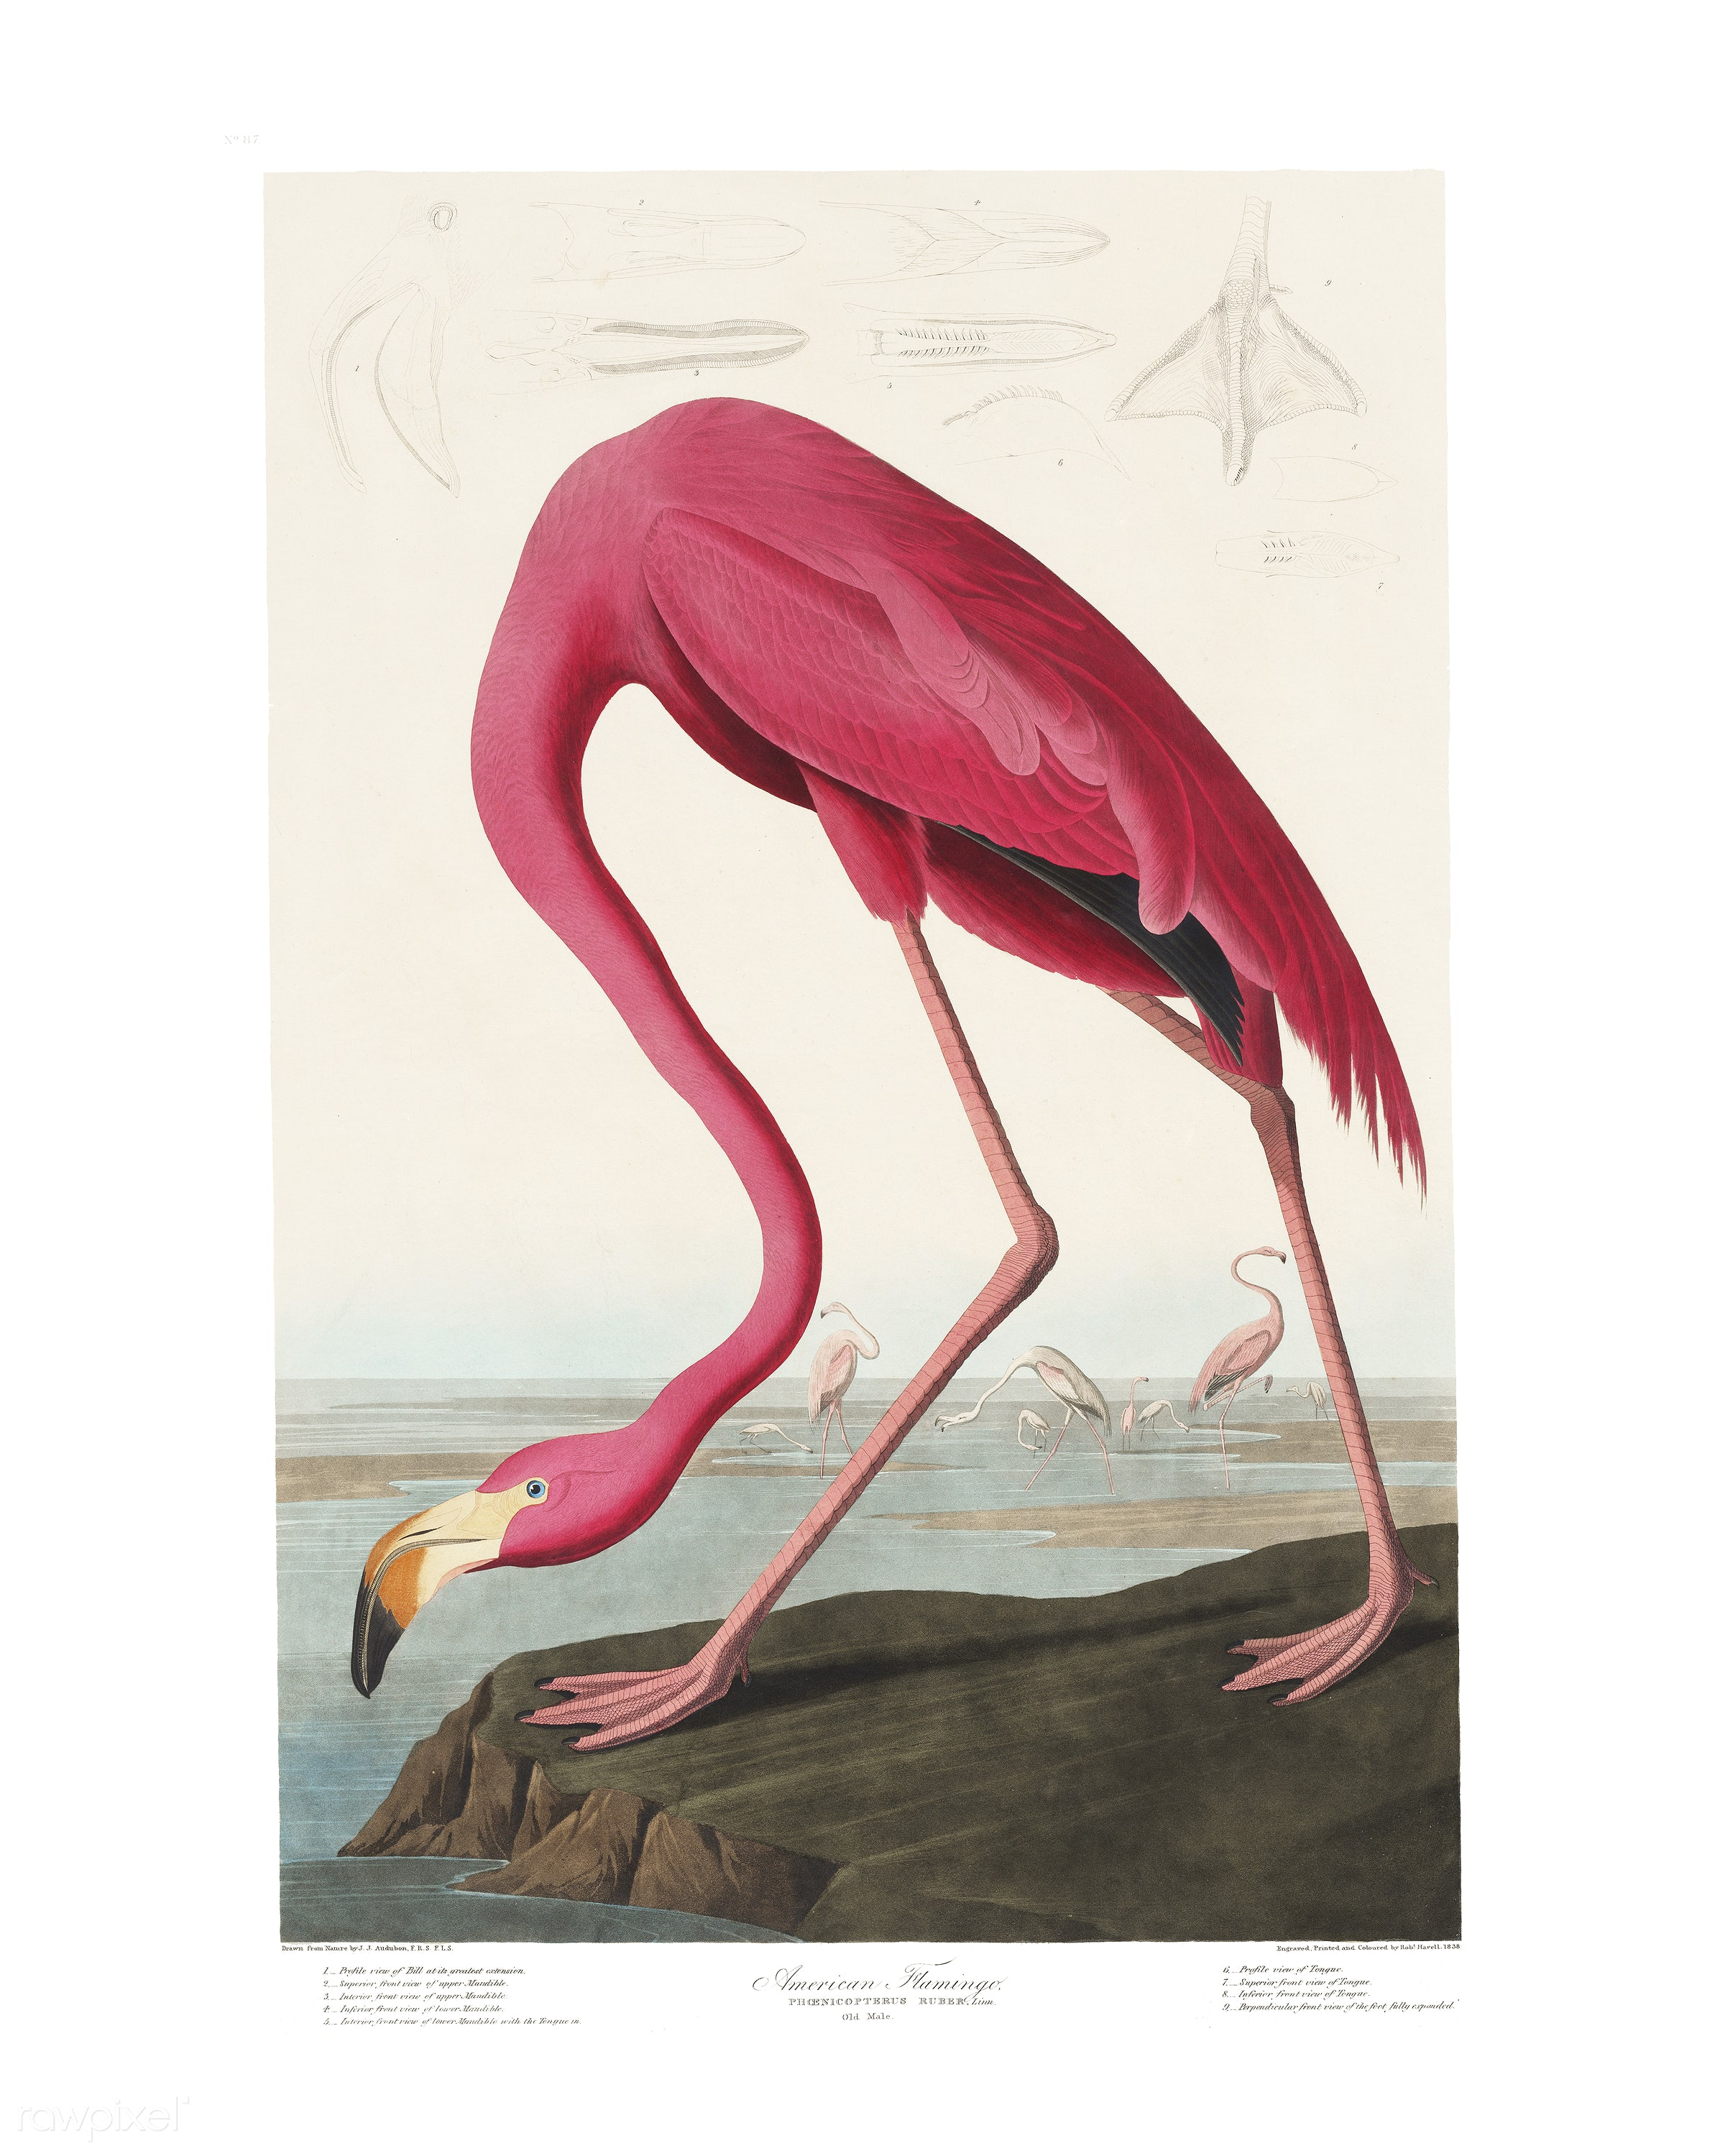 Pink Flamingo from Birds of America (1827) illustrated by John James Audubon (1785 - 1851), etched by Robert Havell (1793 -...